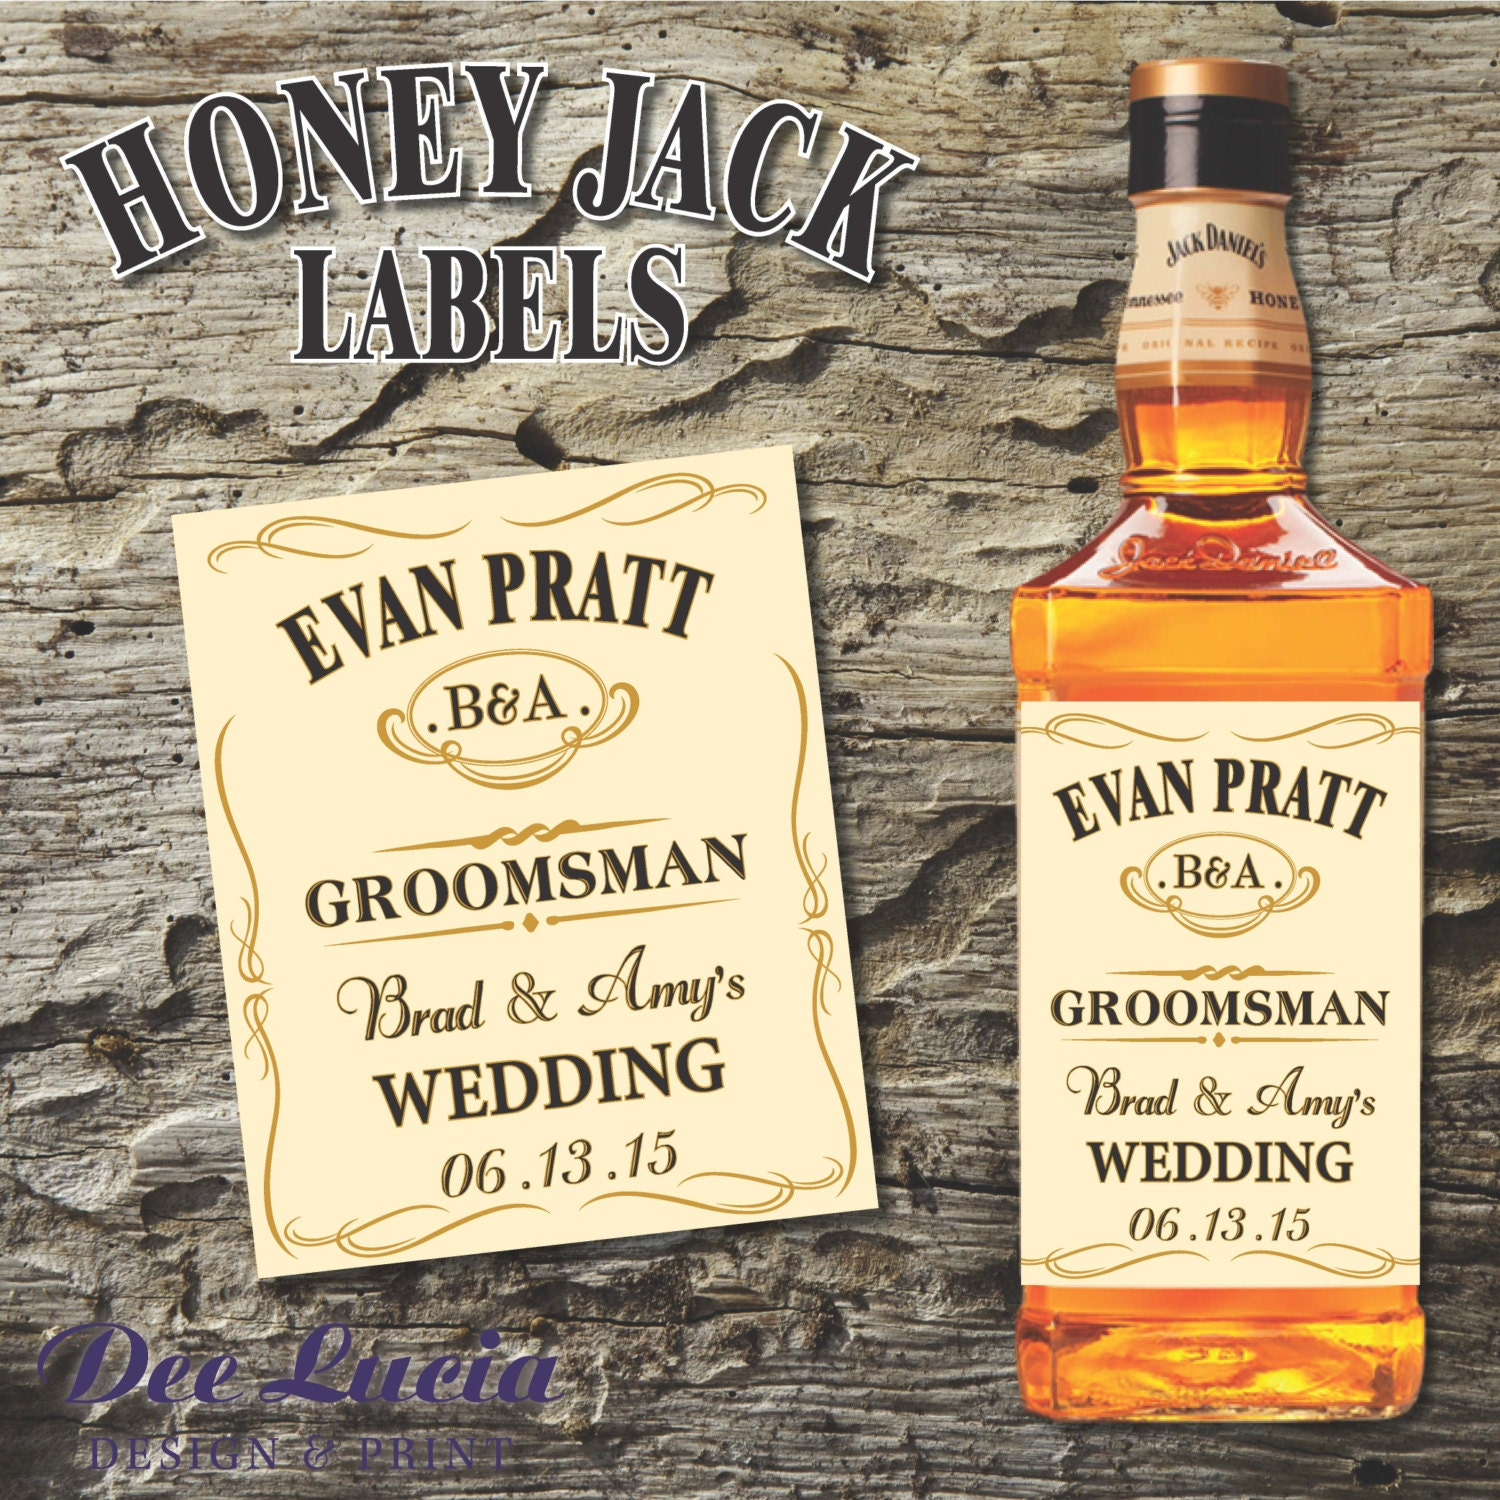 This is an image of Selective Jack Daniels Honey Label